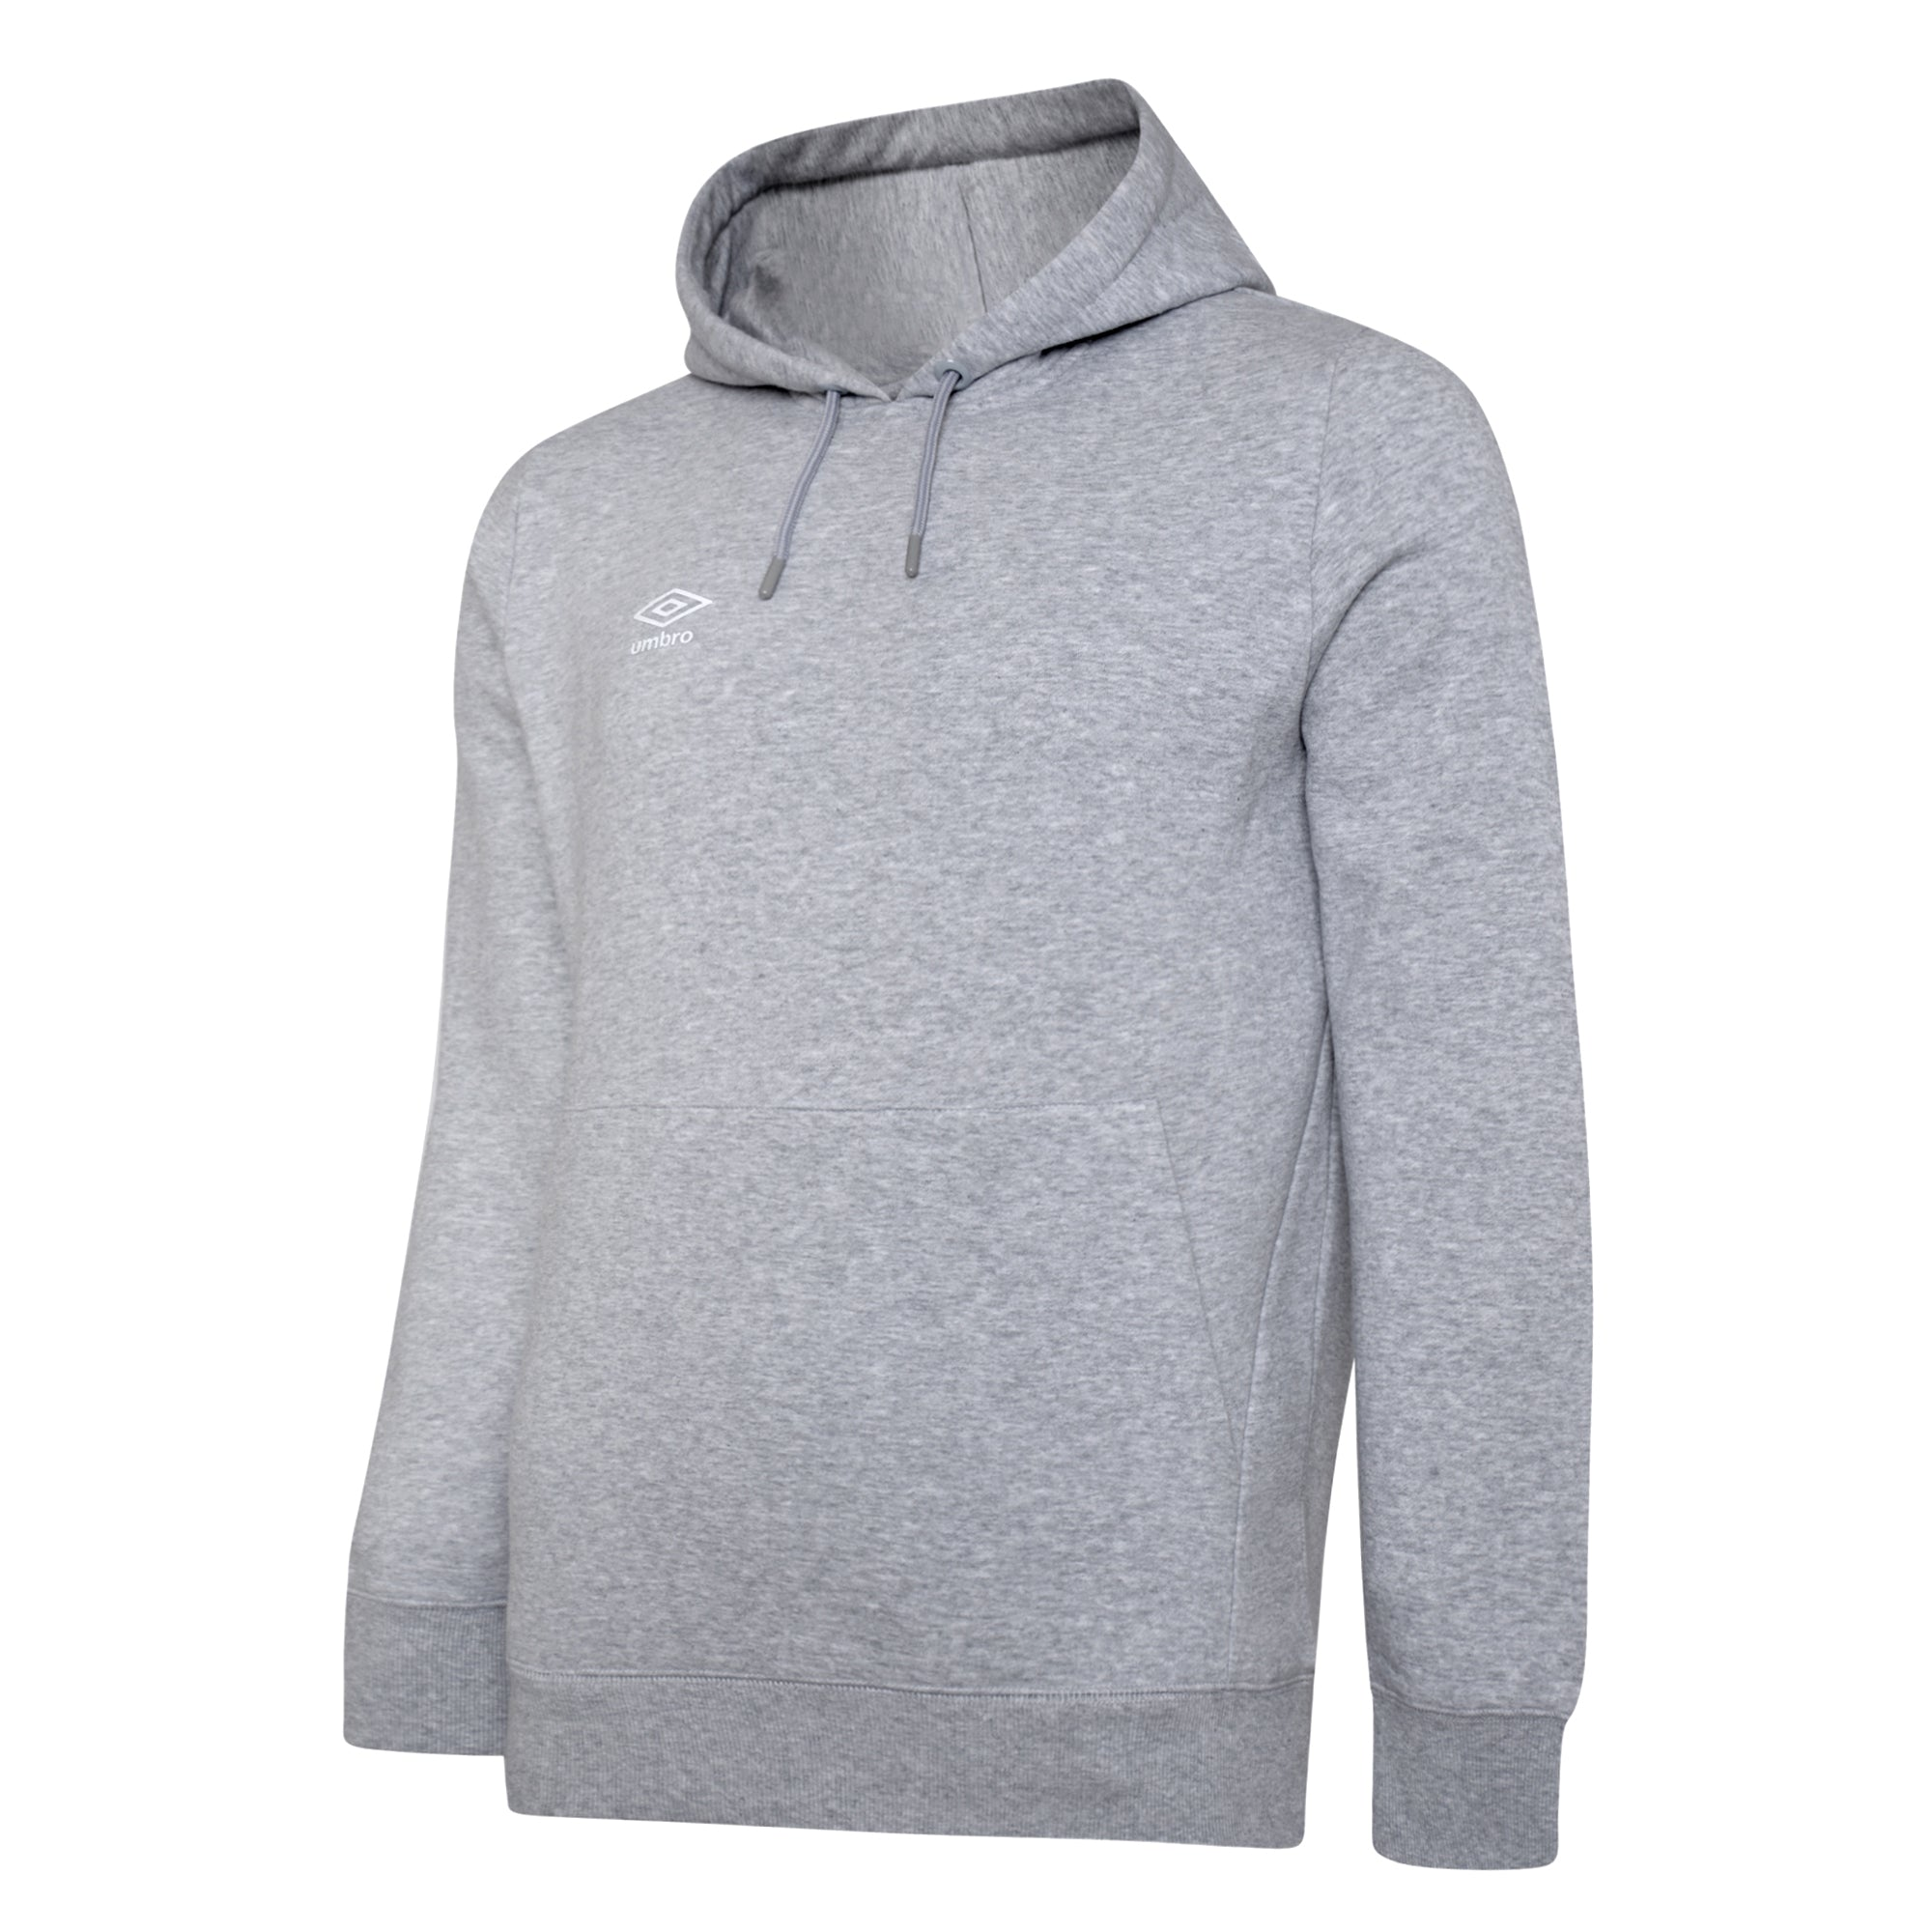 Umbro Club Leisure Hoody - Grey Marl/White